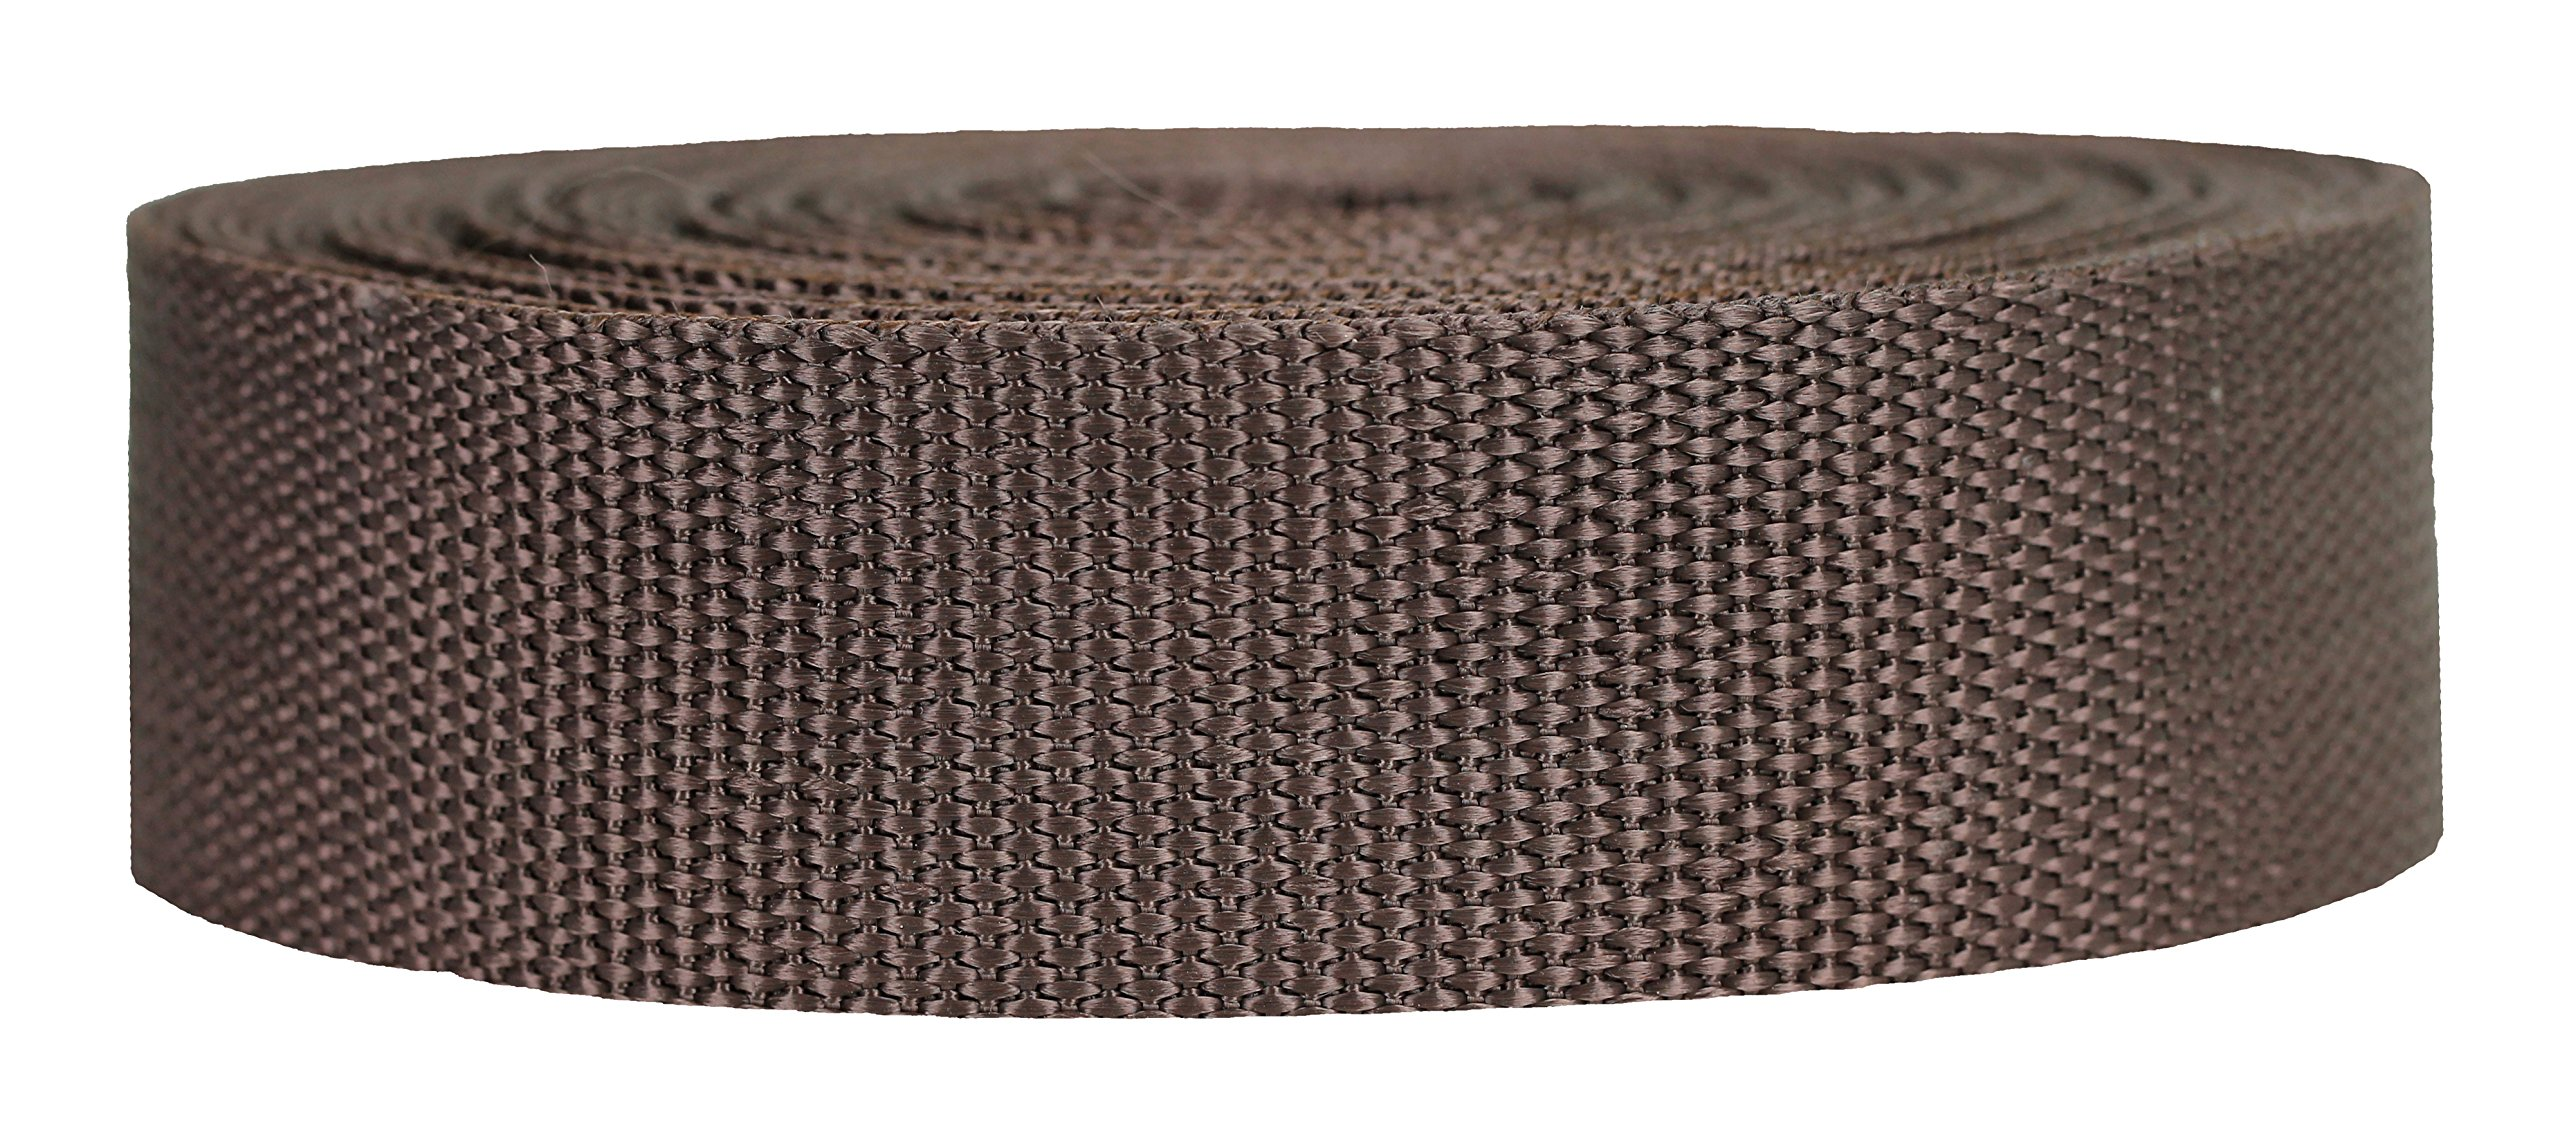 Strapworks Heavyweight Polypropylene Webbing - Heavy Duty Poly Strapping for Outdoor DIY Gear Repair, 1.5 Inch x 25 Yards, Brown